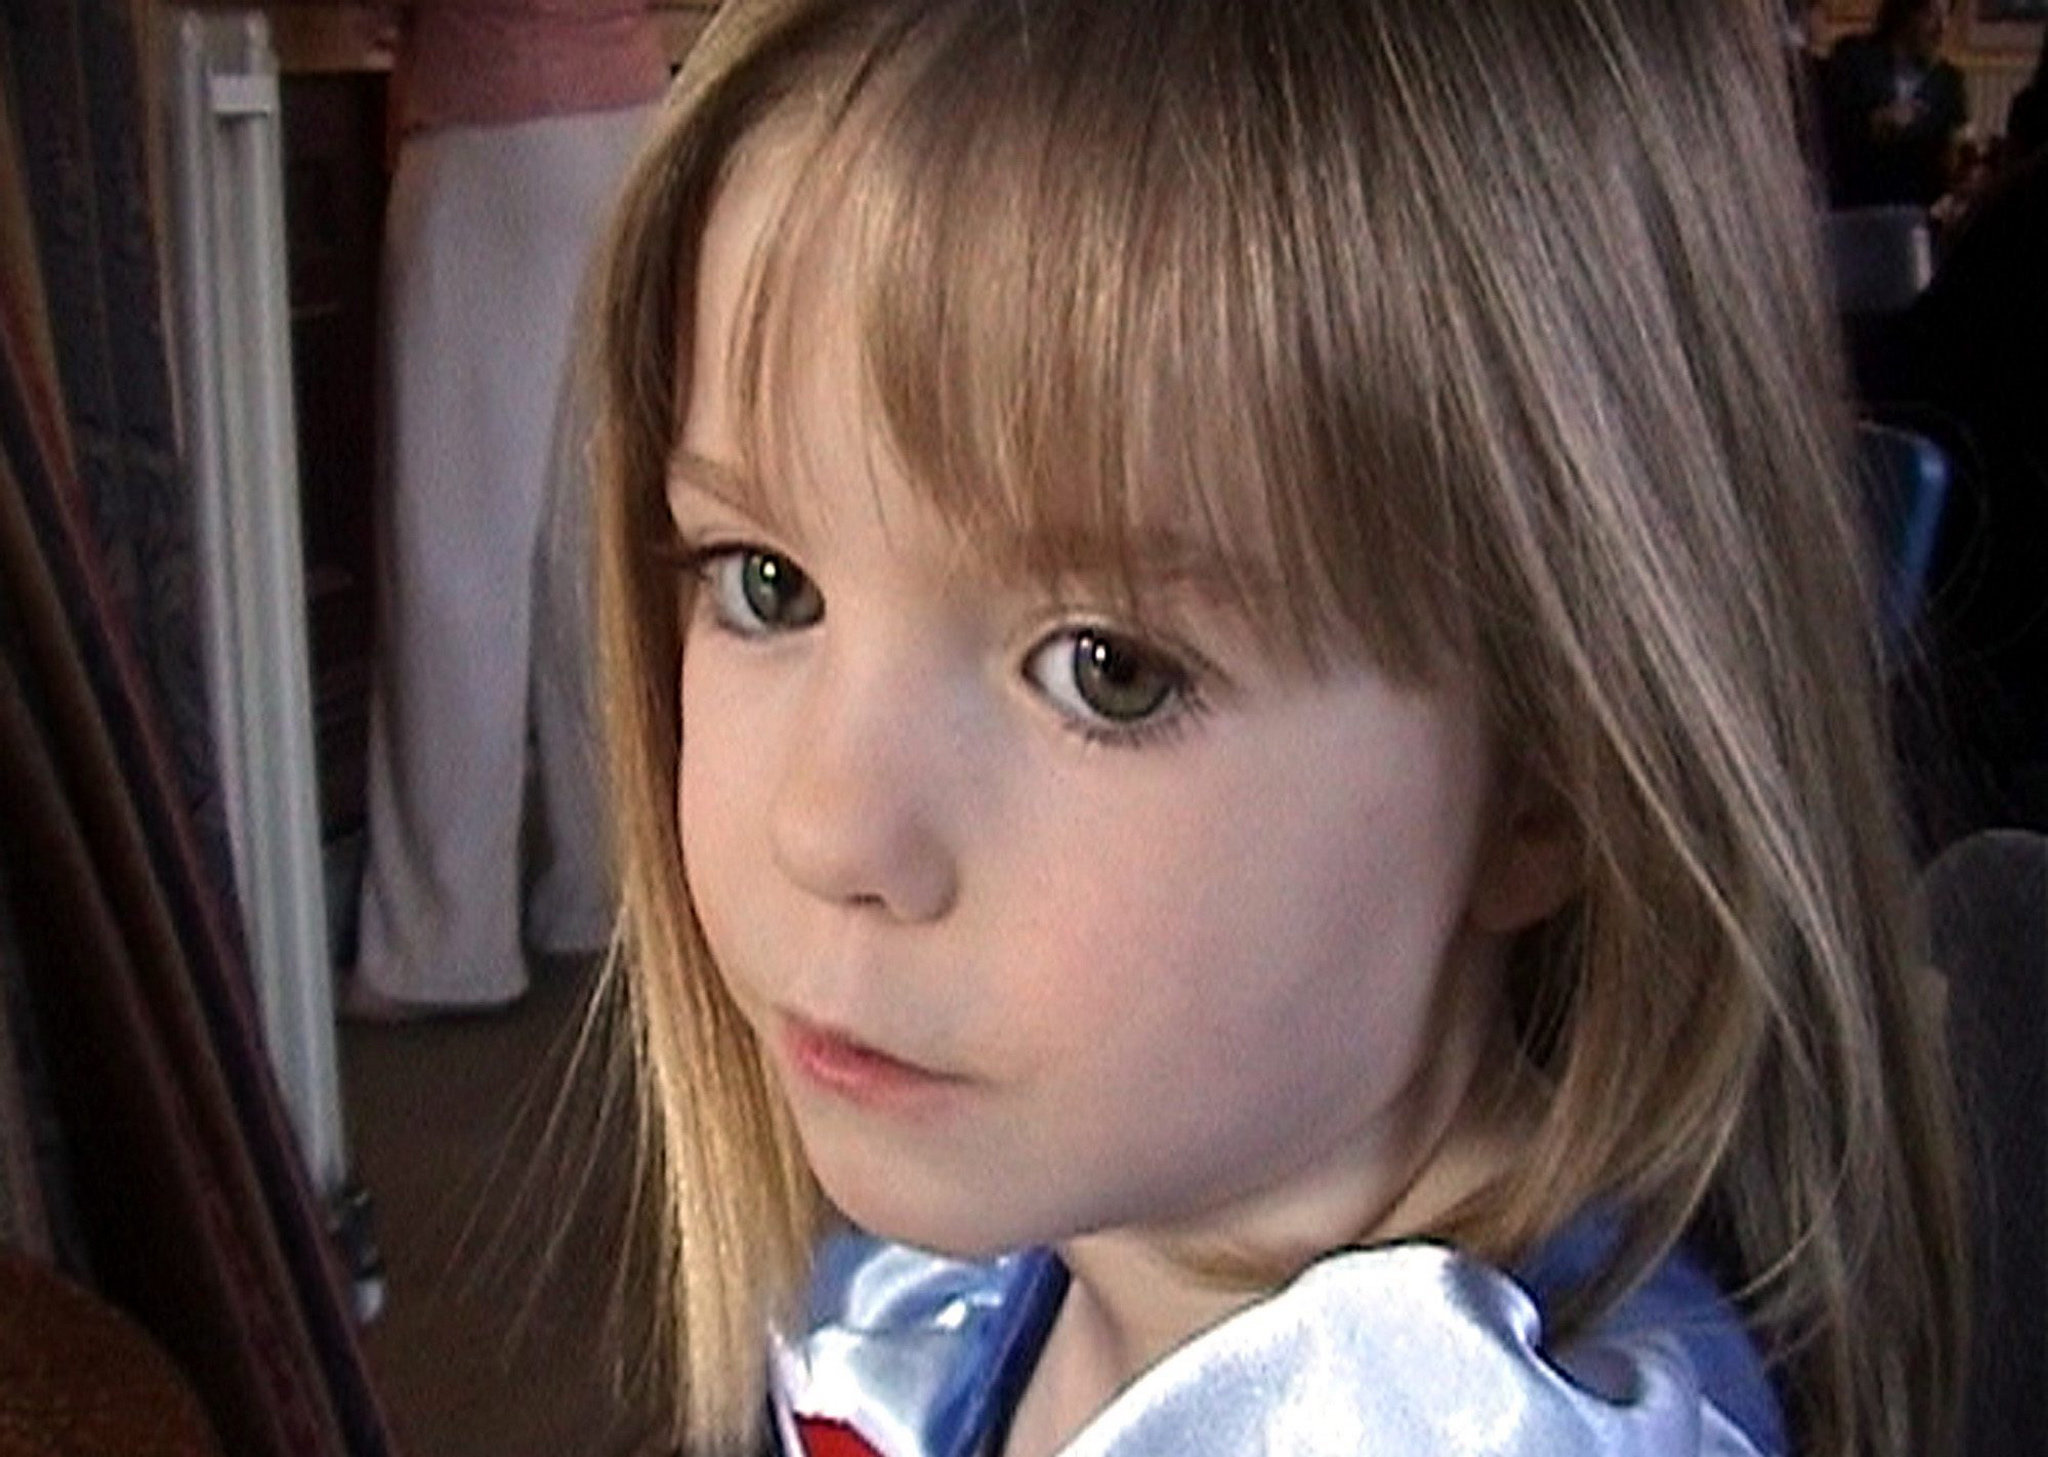 Police apply for more funding for Madeleine McCann search